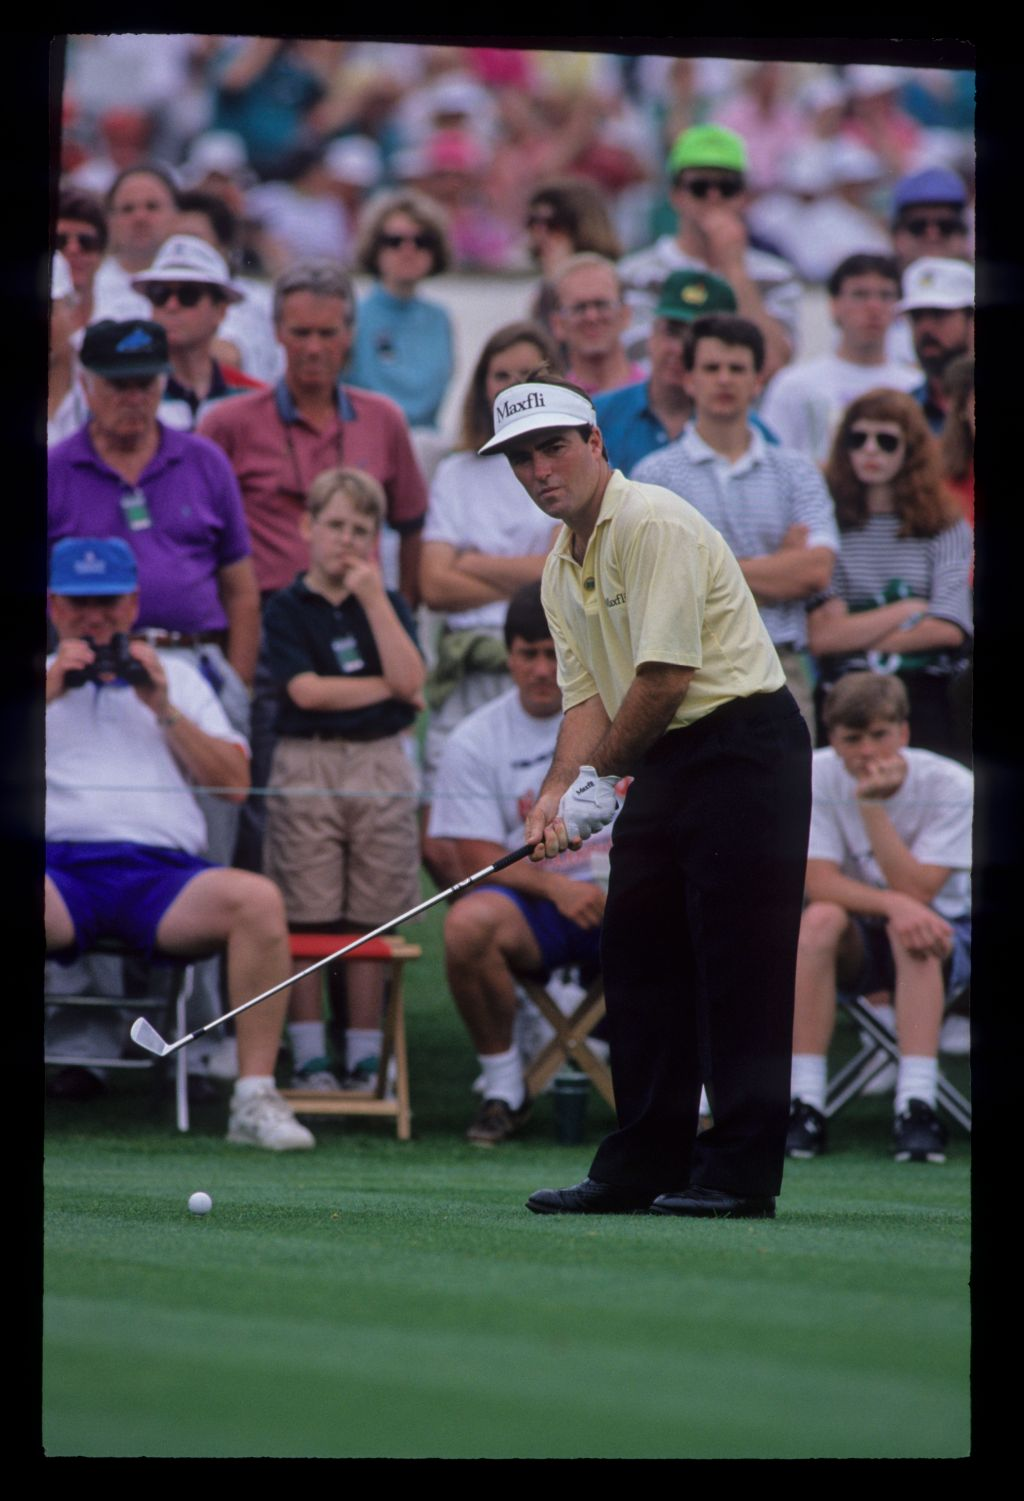 Craig Parry preparing to hit from the tee during the 1992 Masters